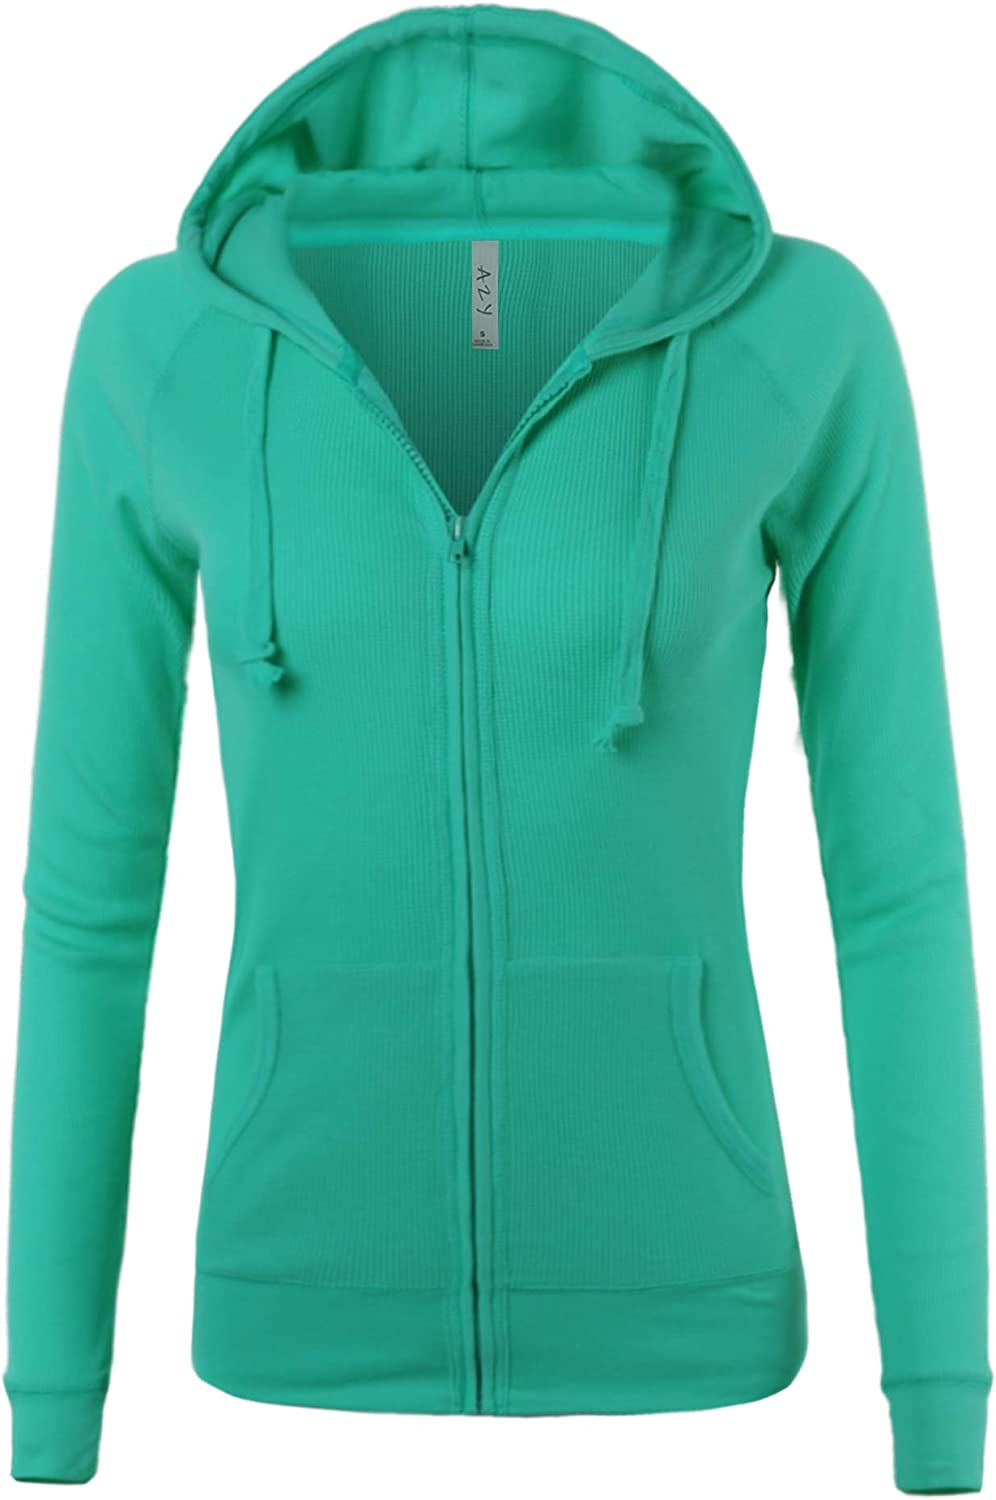 A2Y Women's Casual Lightweight Fitted Zip Up Thermal Hoodie with Drawstring